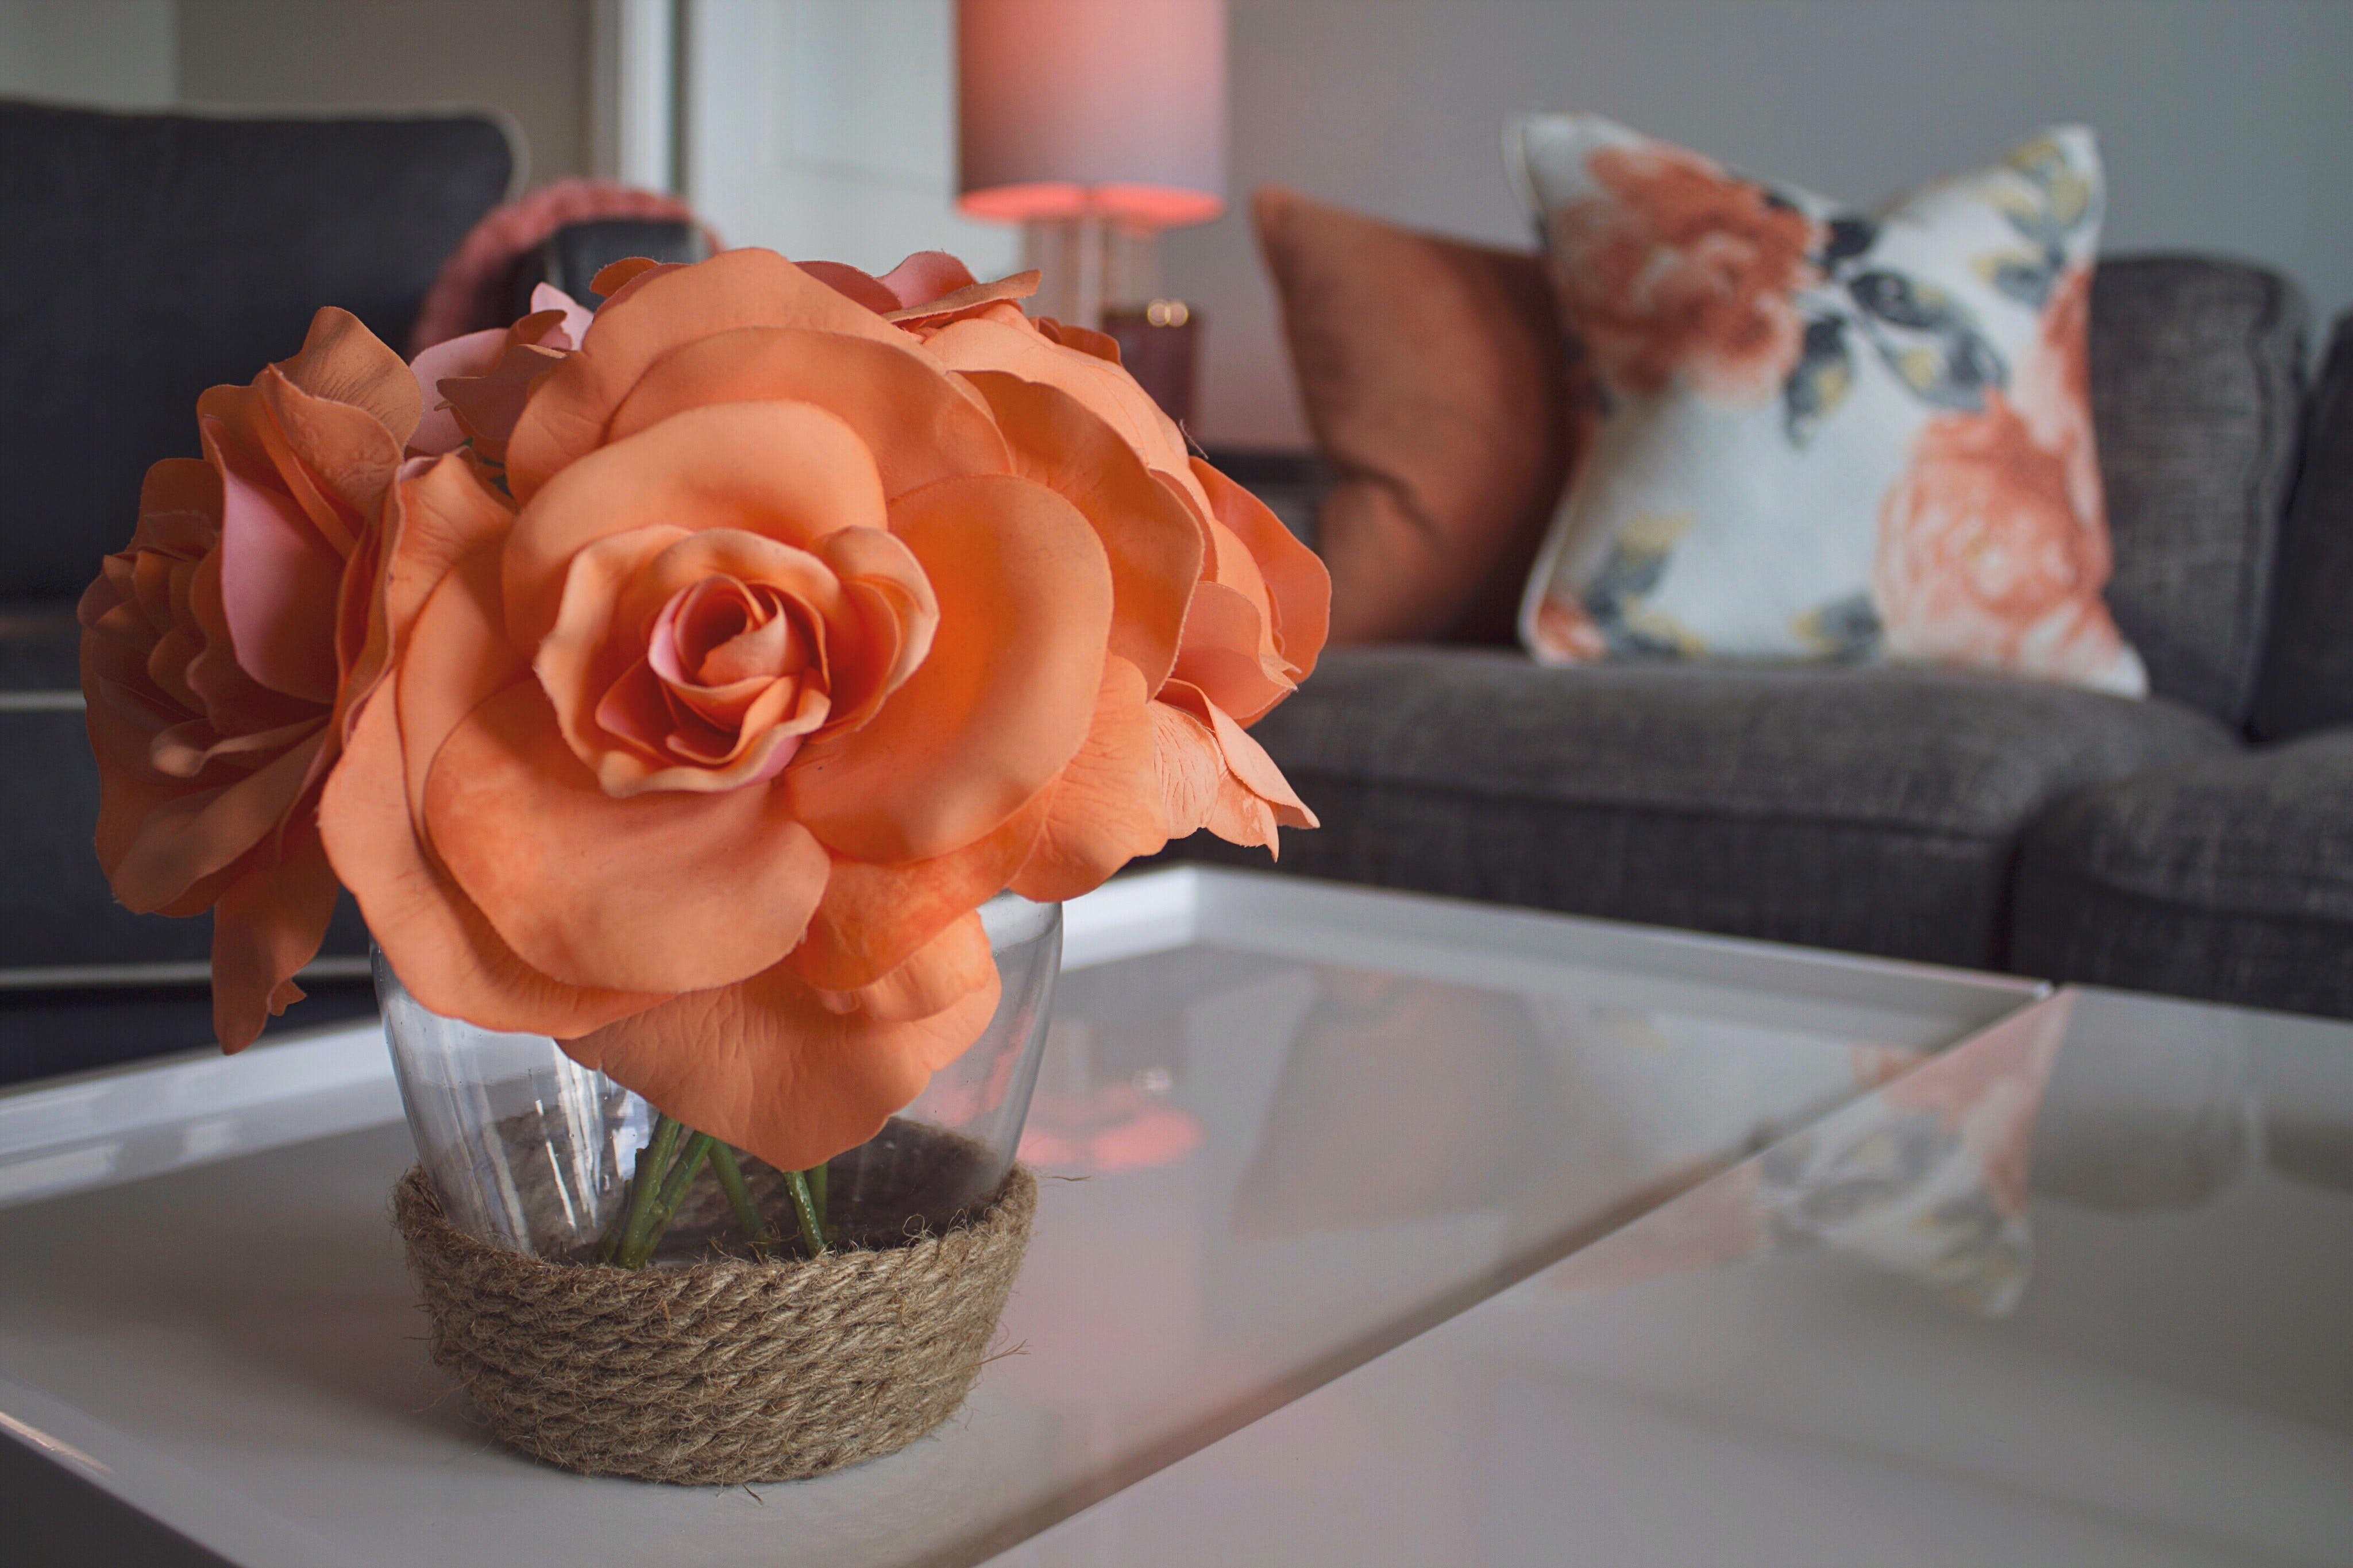 Free stock photo of artificial flowers, beautiful flowers, bunch of flowers, coffee table